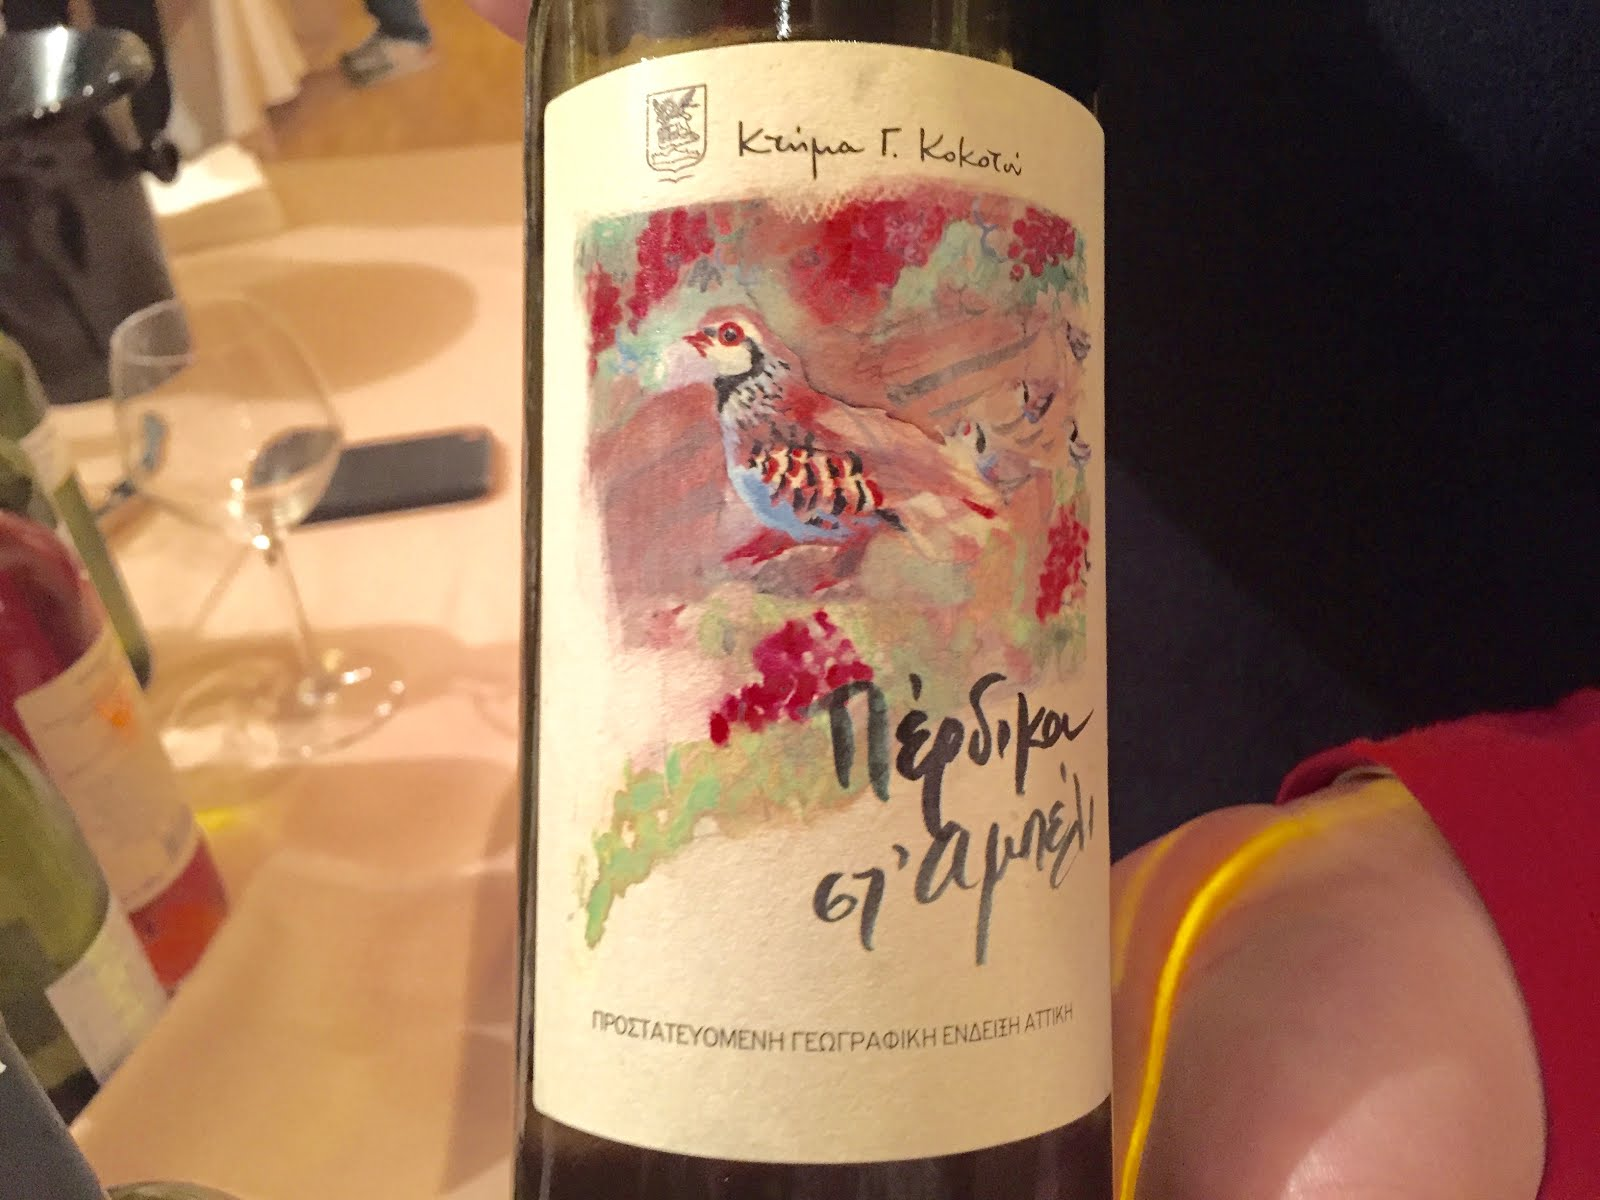 A winemaker who is showcasing Greek wines to the world ...